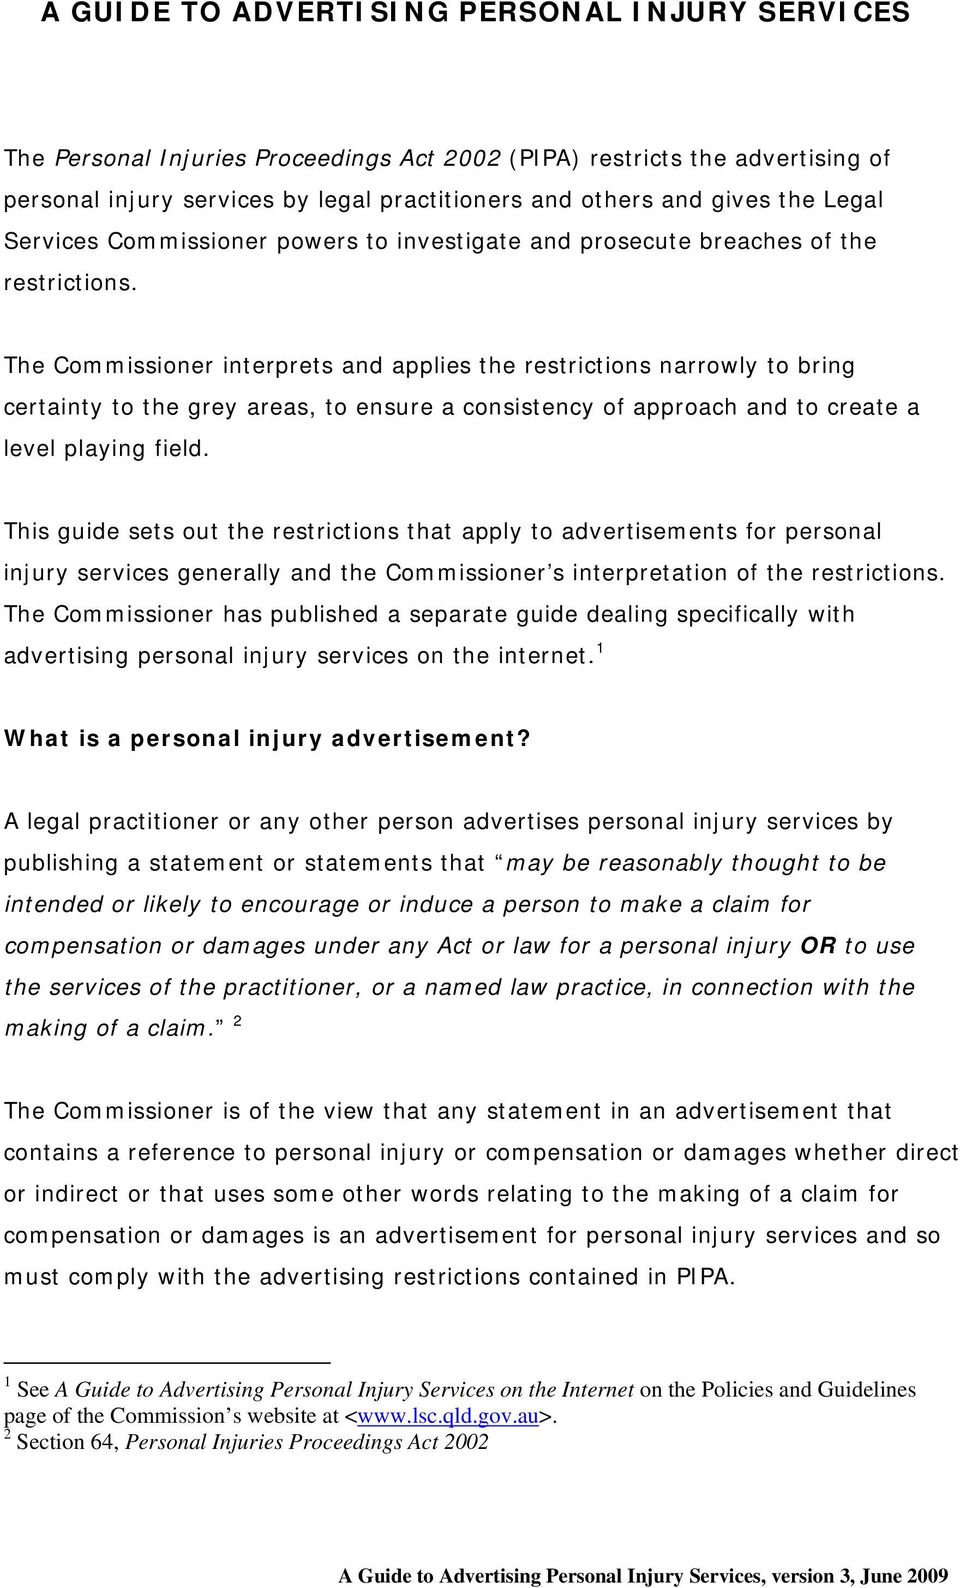 The Commissioner interprets and applies the restrictions narrowly to bring certainty to the grey areas, to ensure a consistency of approach and to create a level playing field.